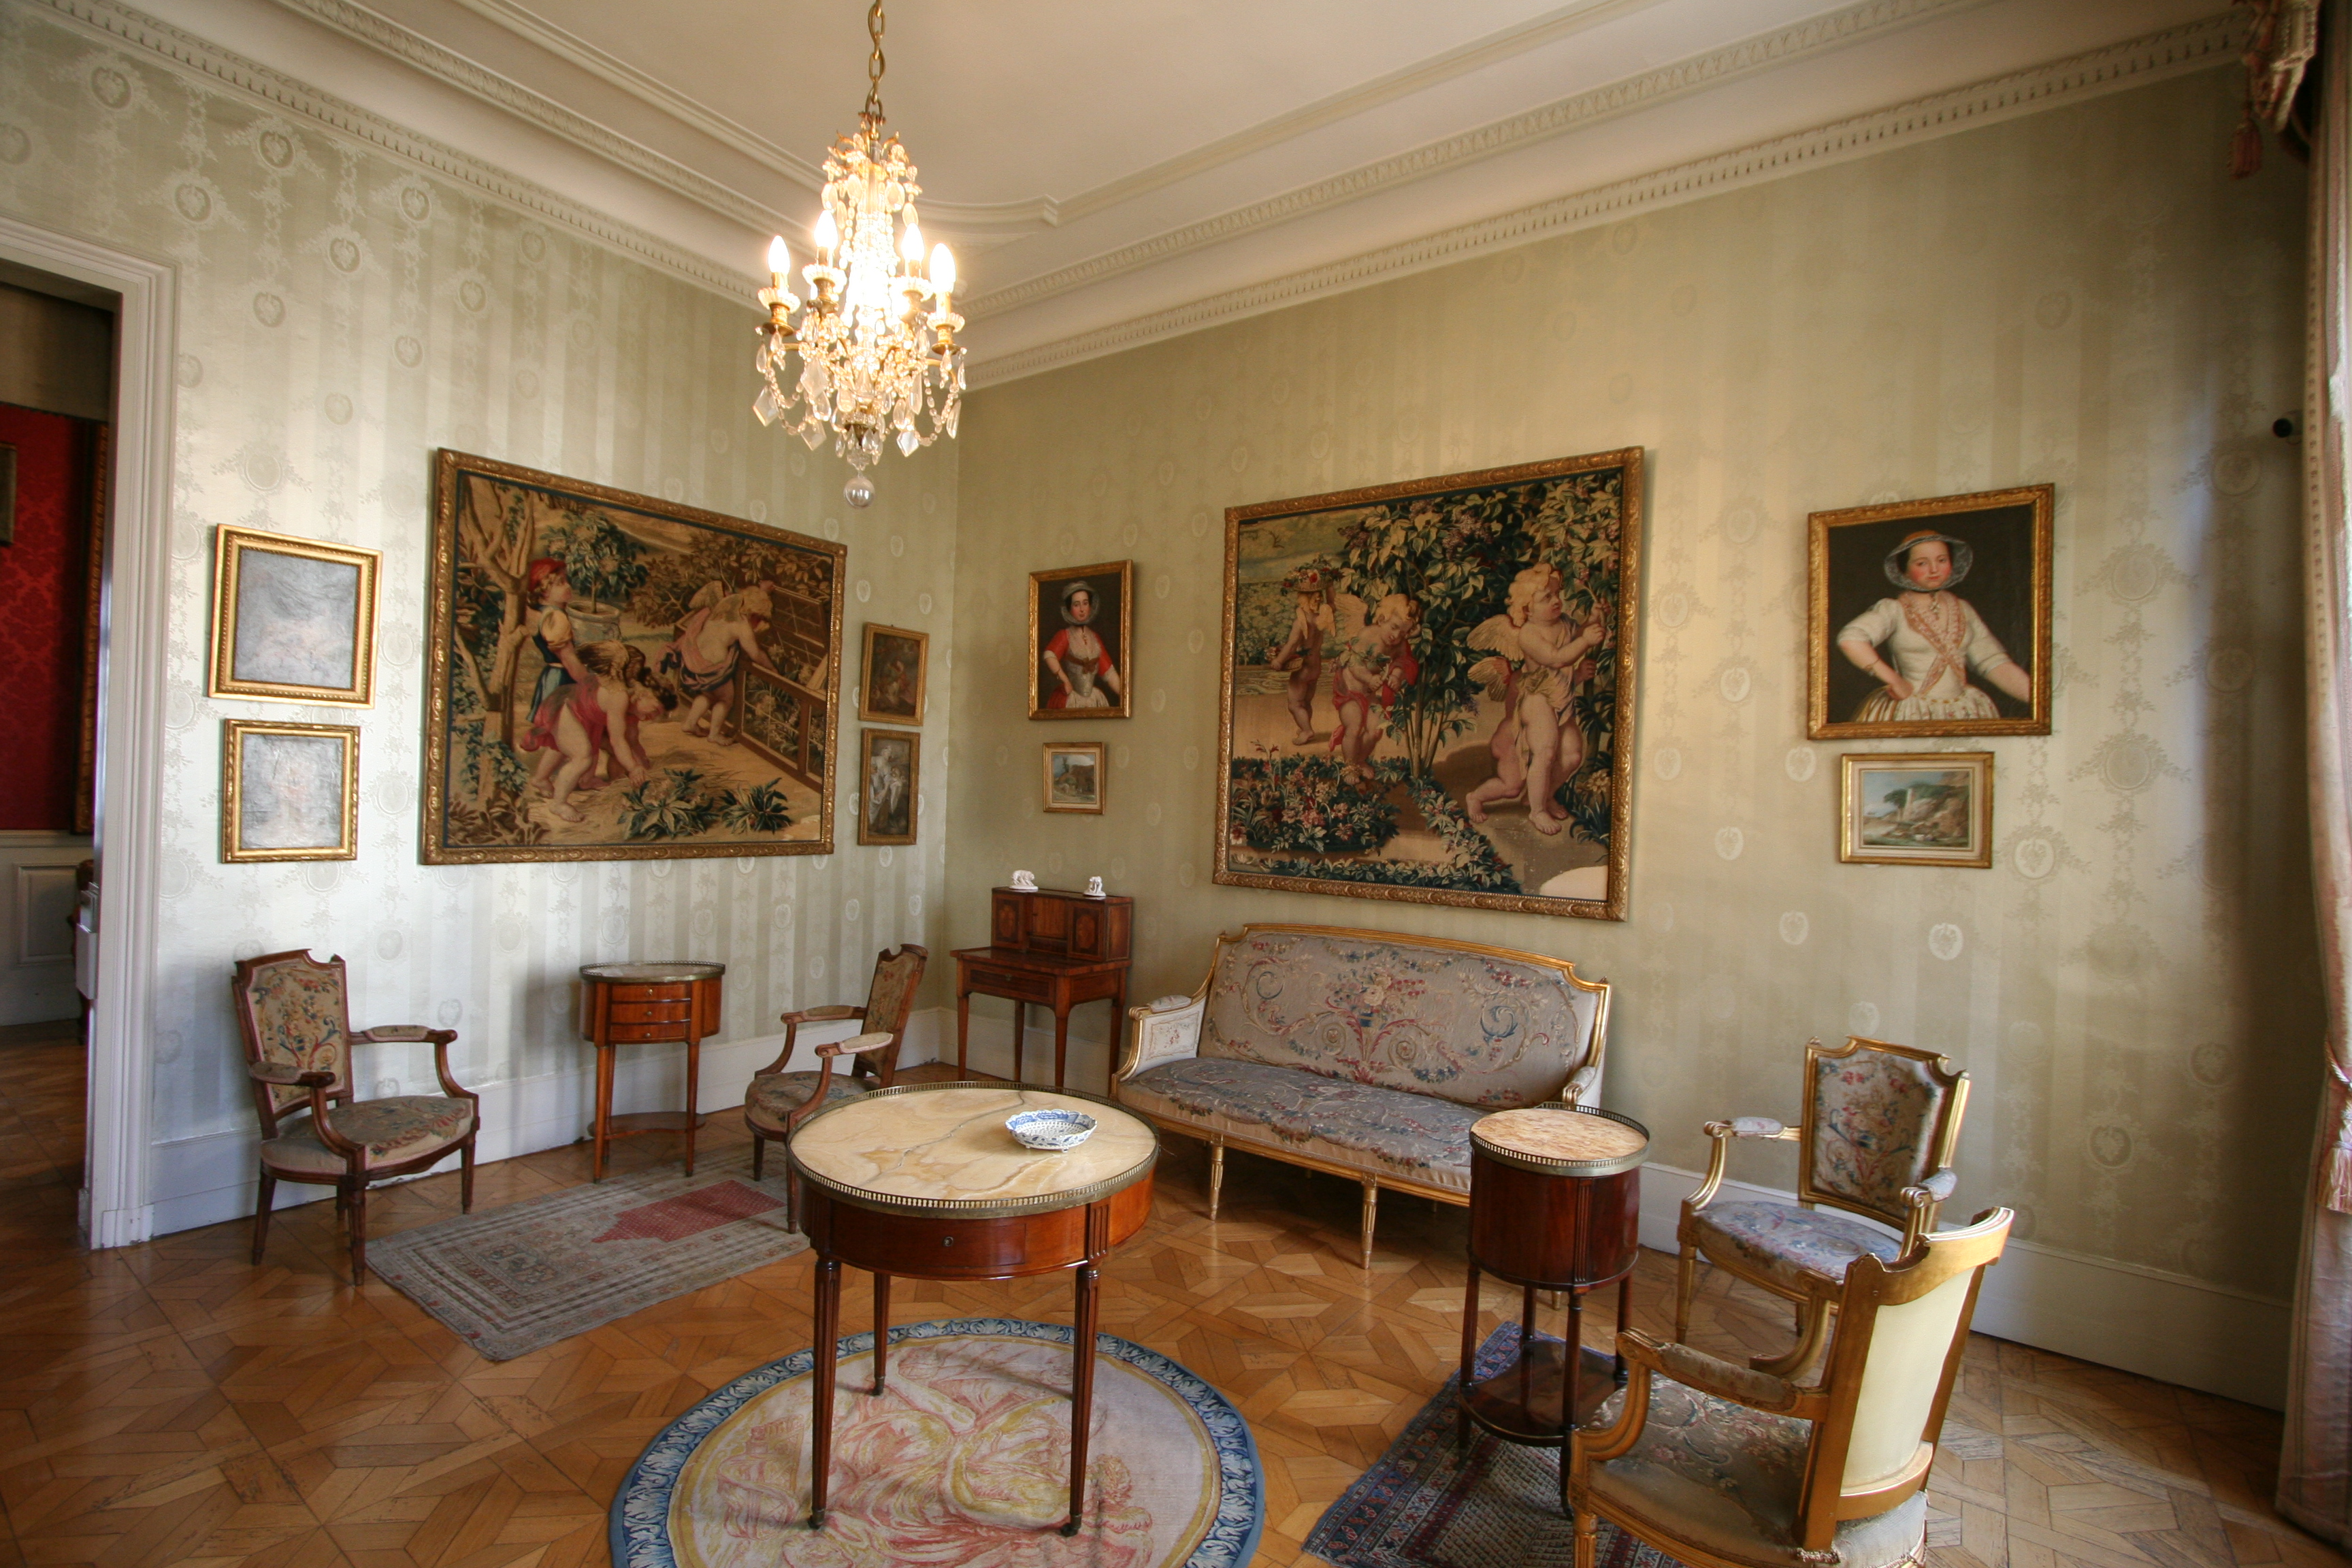 File:Salon Louis XVI.JPG - Wikimedia Commons